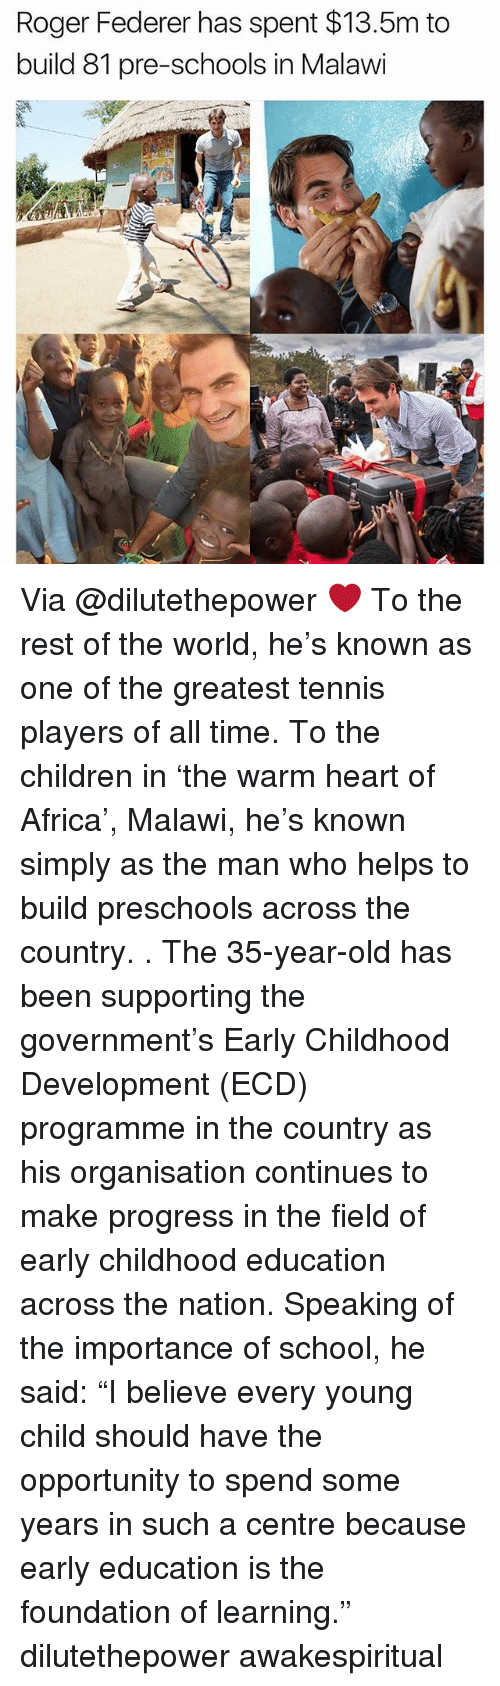 """Rogering: Roger Federer has spent $13.5m to  build 81 pre-schools in Malawi Via @dilutethepower ❤ To the rest of the world, he's known as one of the greatest tennis players of all time. To the children in 'the warm heart of Africa', Malawi, he's known simply as the man who helps to build preschools across the country. . The 35-year-old has been supporting the government's Early Childhood Development (ECD) programme in the country as his organisation continues to make progress in the field of early childhood education across the nation. Speaking of the importance of school, he said: """"I believe every young child should have the opportunity to spend some years in such a centre because early education is the foundation of learning."""" dilutethepower awakespiritual"""